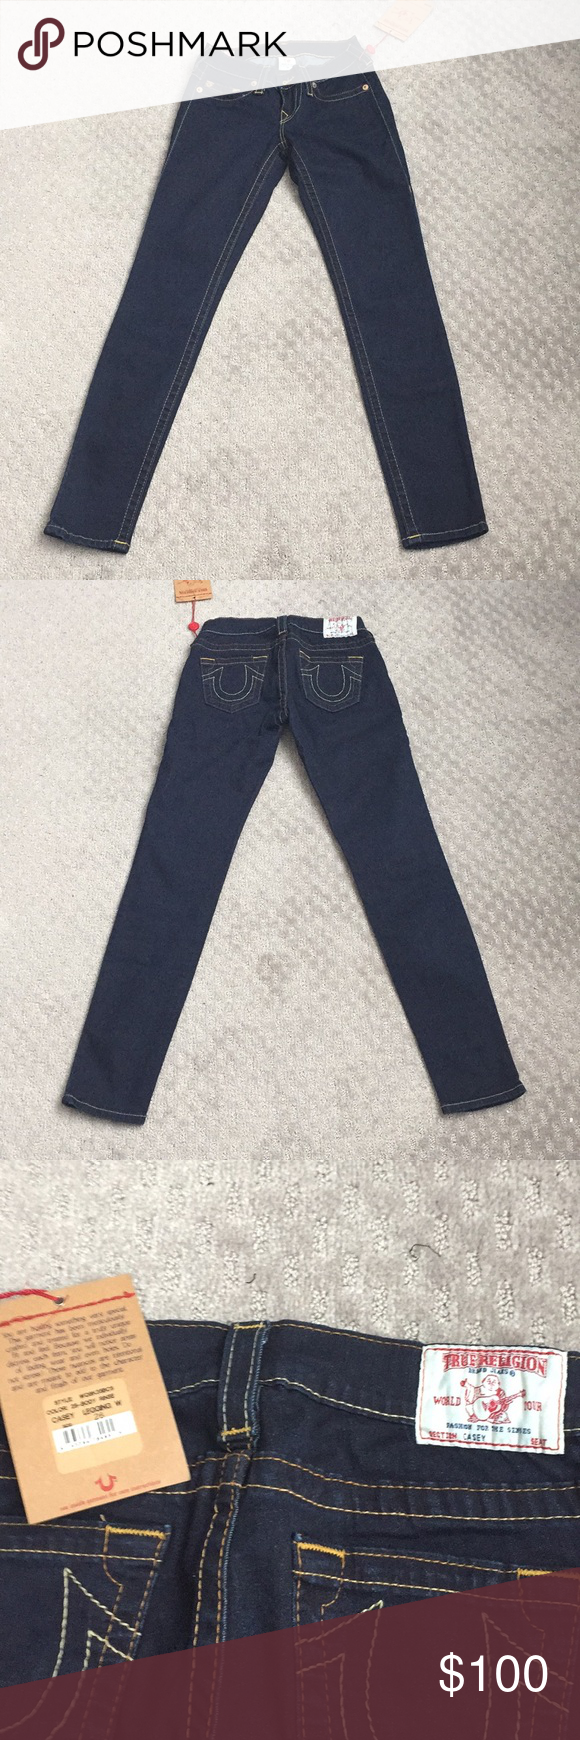 a58a73087 Brand new True Religion Casey legging size 26 Brand new with tag true  religion Casey legging in size 26 and 2-S body rinse color.